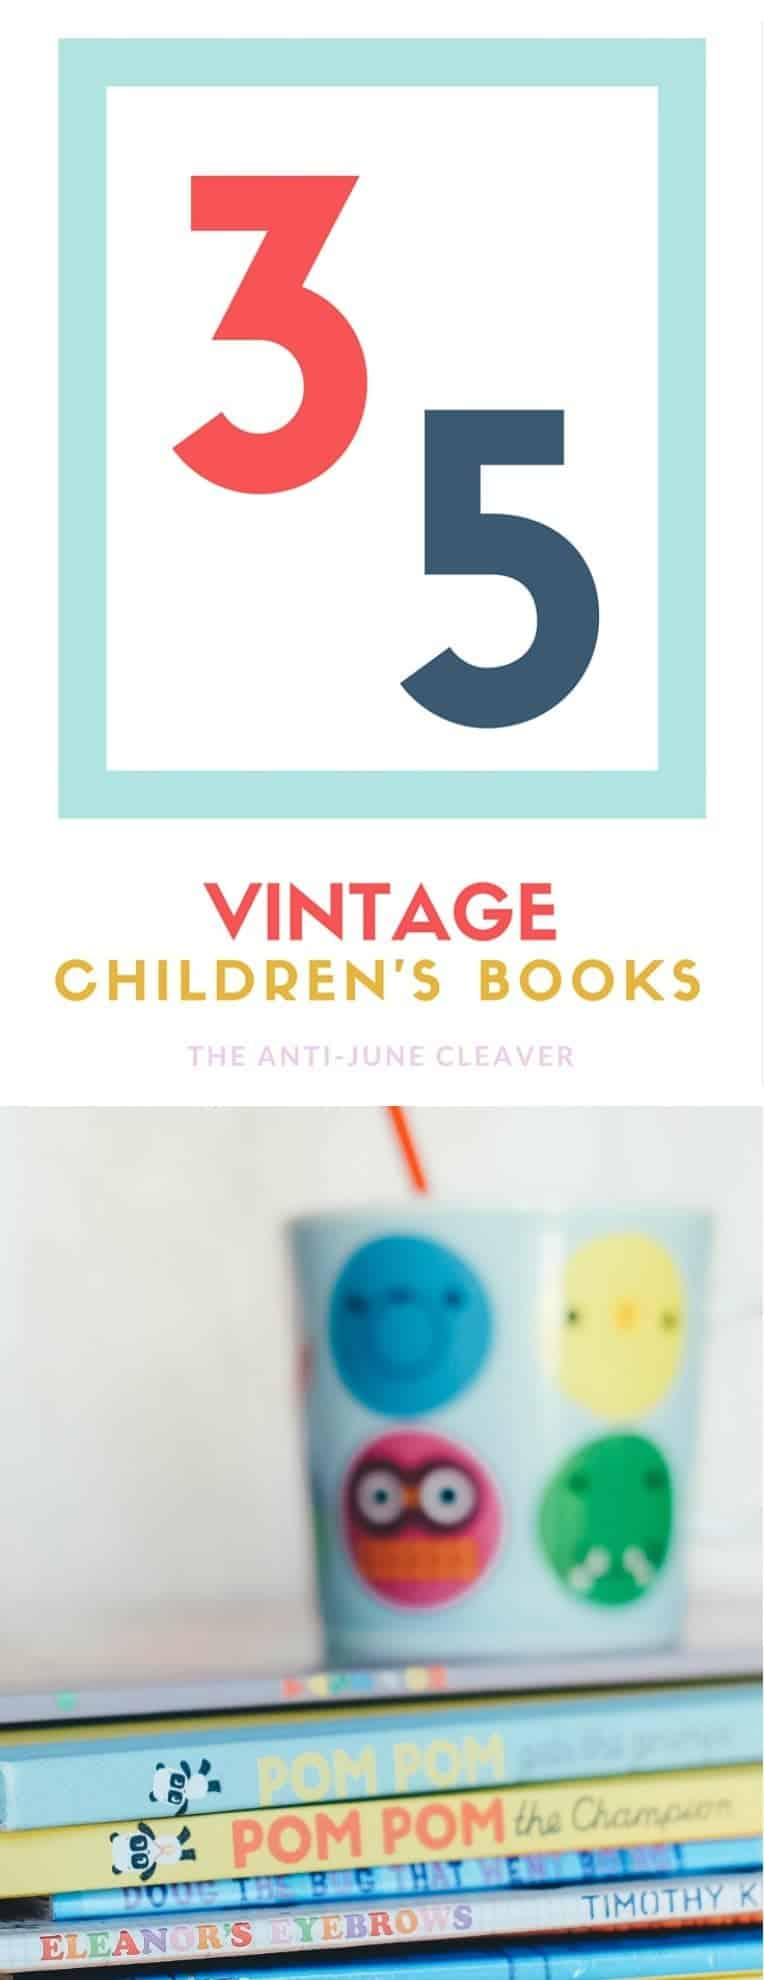 35 Vintage Children's Books to Share with Your Children